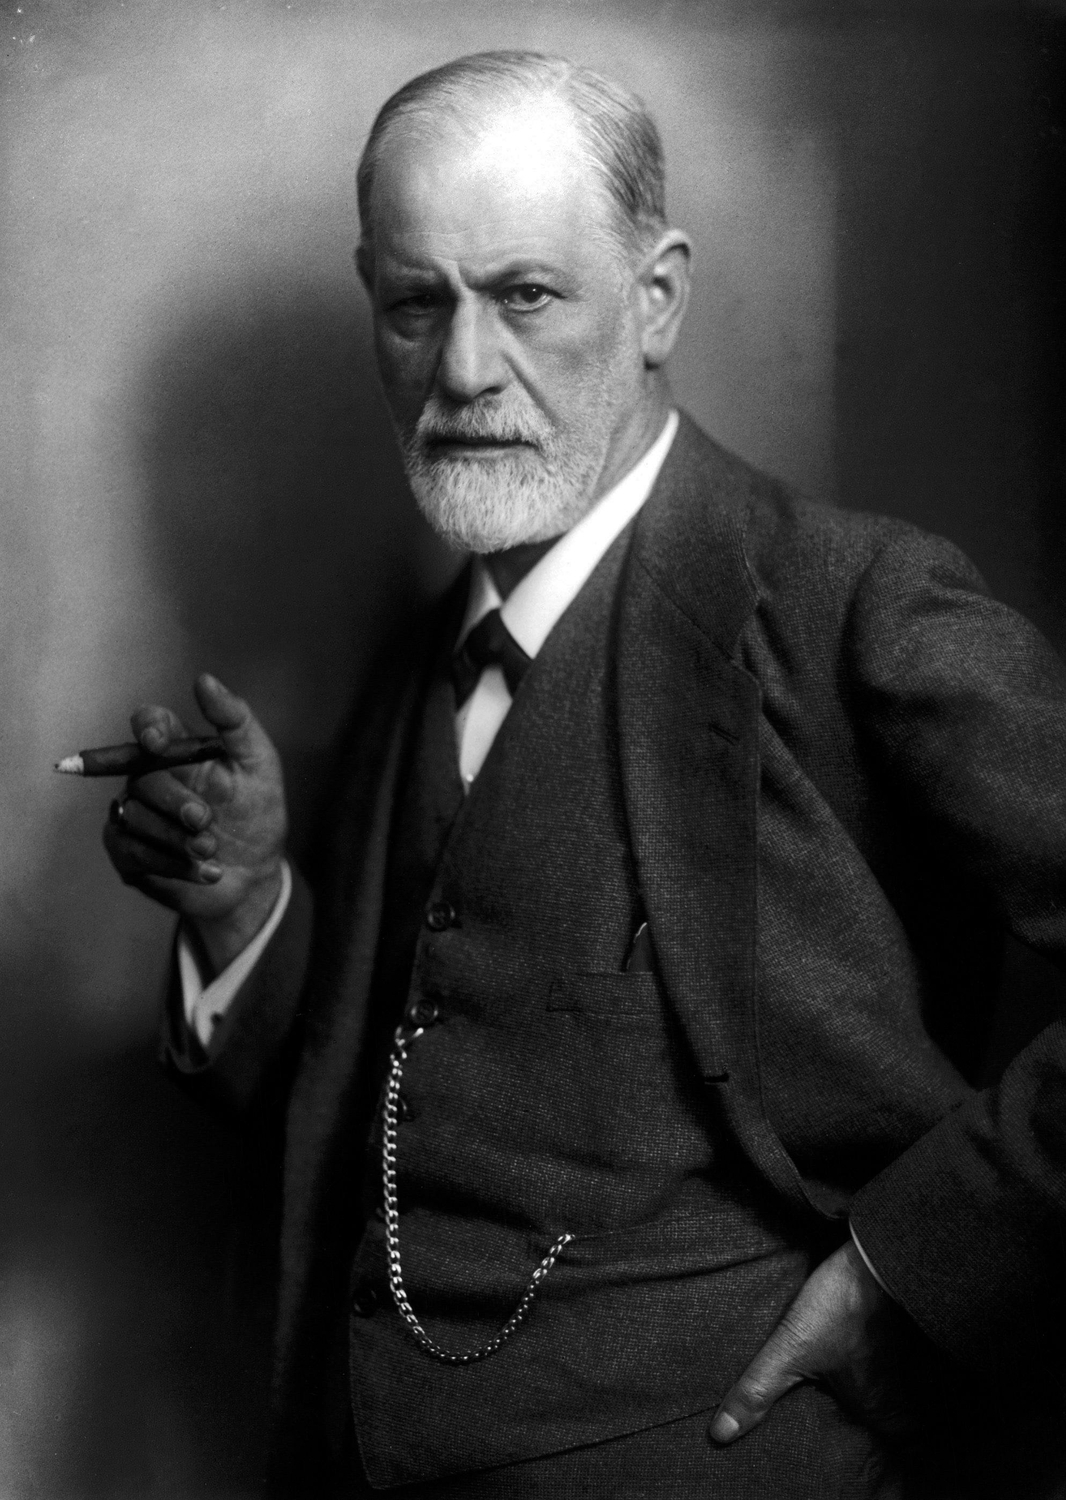 List of freud's papers